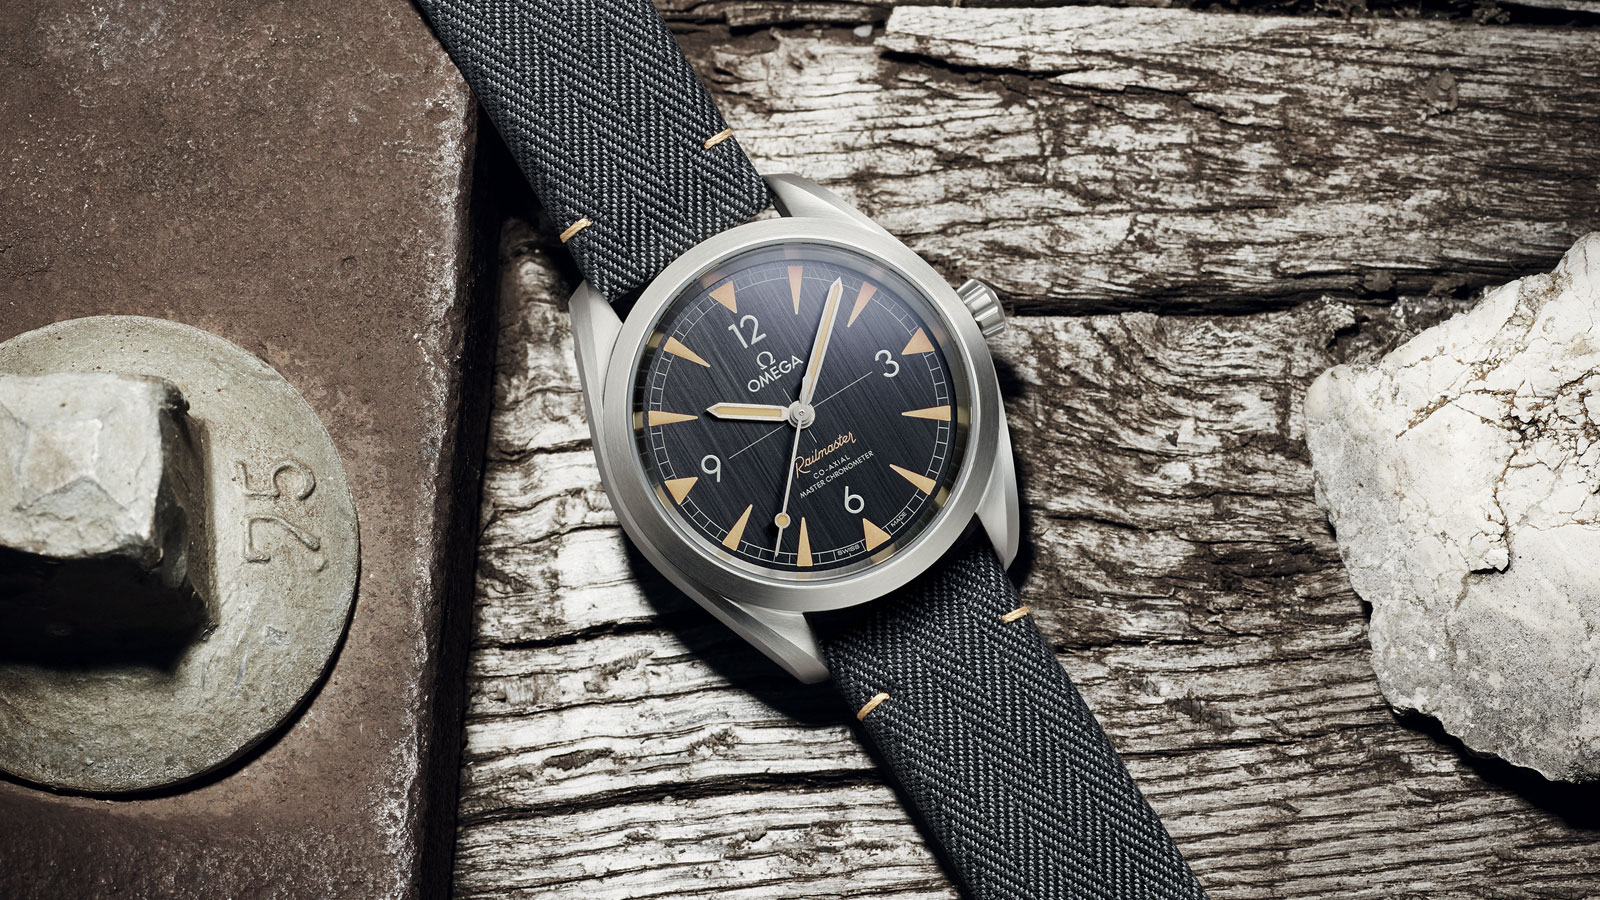 The Railmaster Omega Co-Axial Master Chronometer of the Seamaster Collection, presented on a wooden support